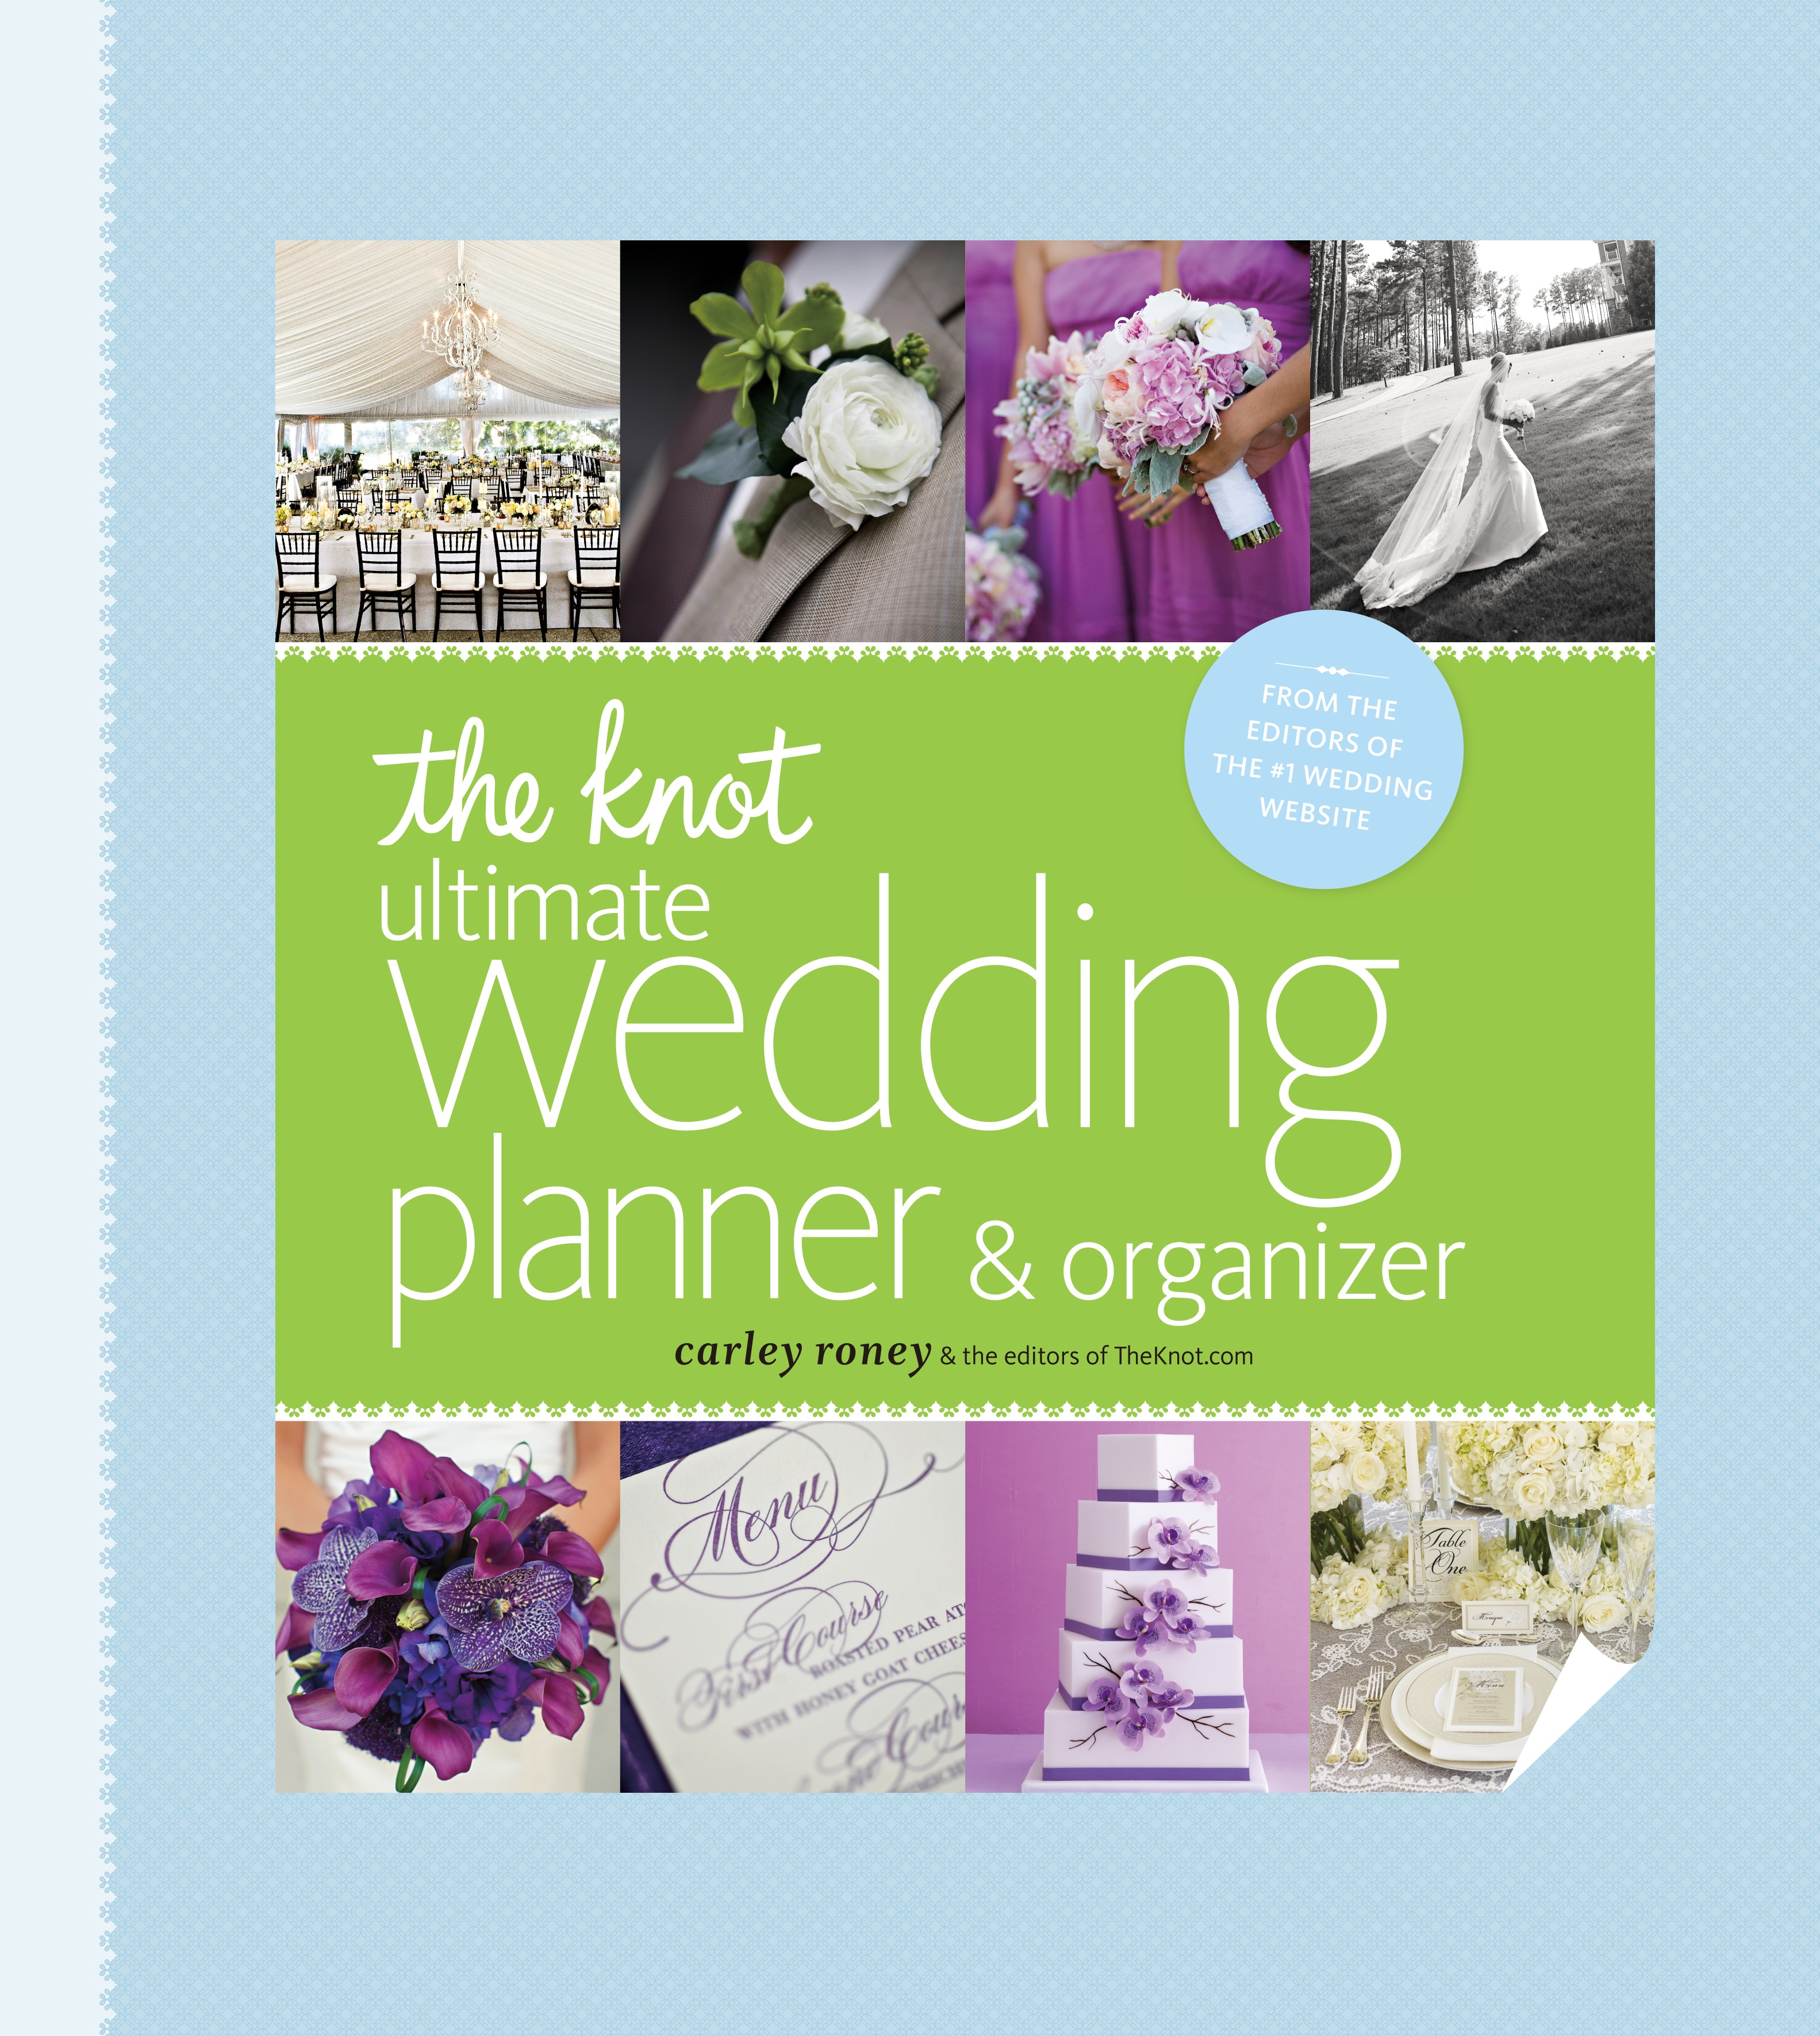 The Knot Ultimate Wedding Planner & Organizer [binder edition] : Worksheets, Checklists, Etiquette, Calendars, and Answers to Frequently Asked Questions